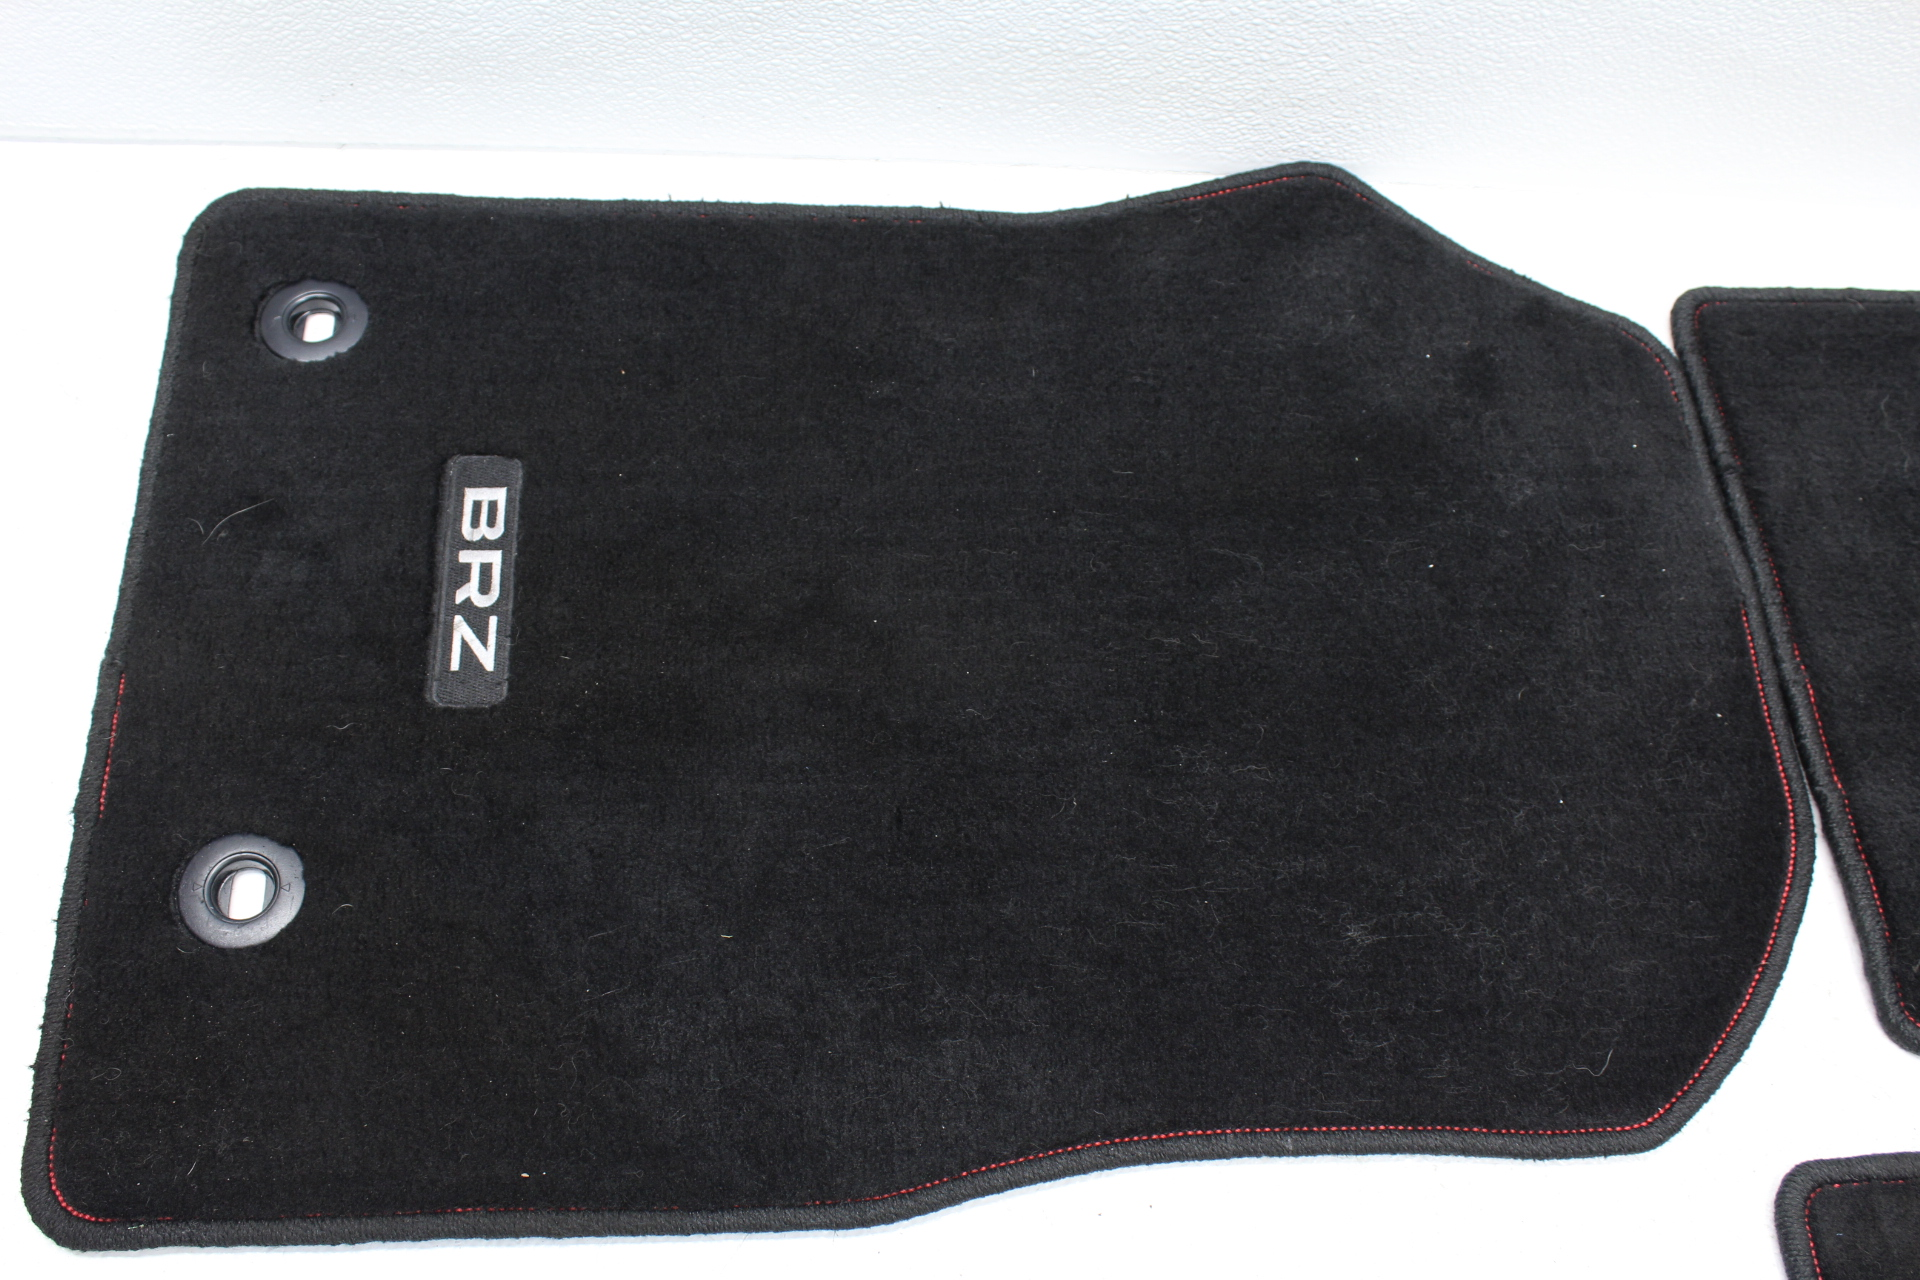 2016 Subaru Brz Floor Mats Carpet Vidalondon